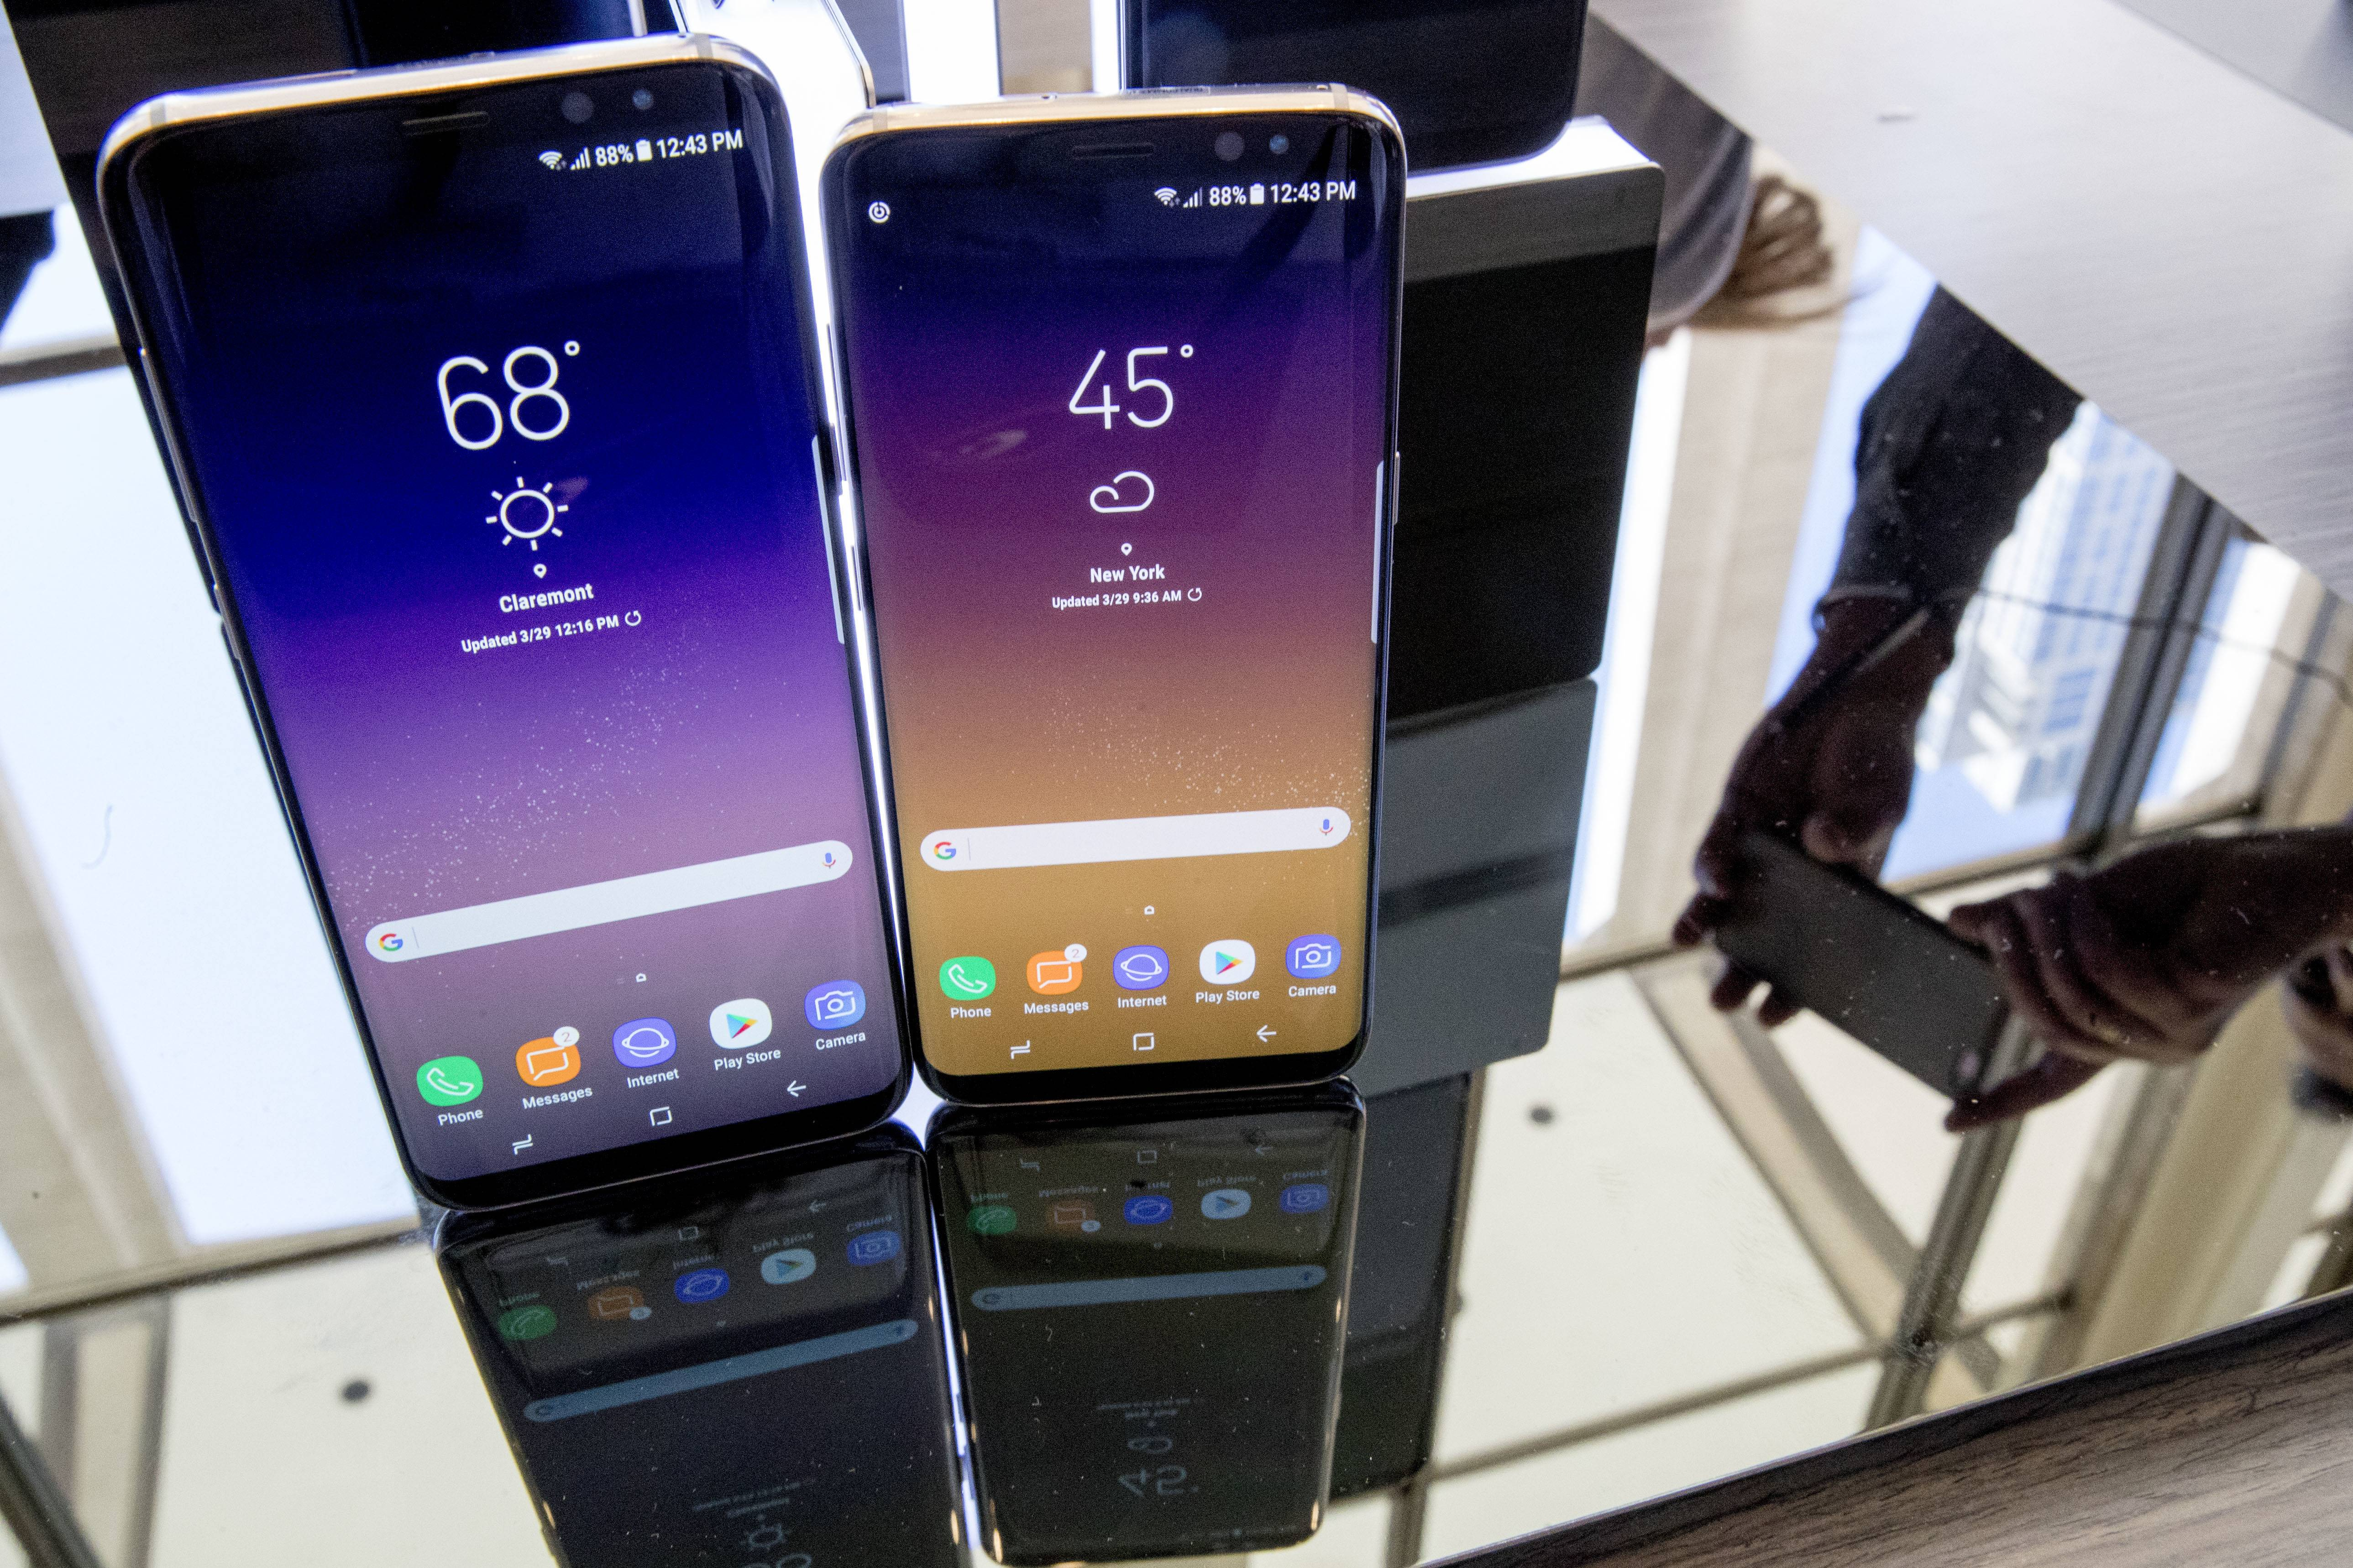 Samsung is finally rolling out the English-language version of its Bixby voice assistant to U.S. users with Galaxy S8 and S8+ phones, the company said Wednesday.